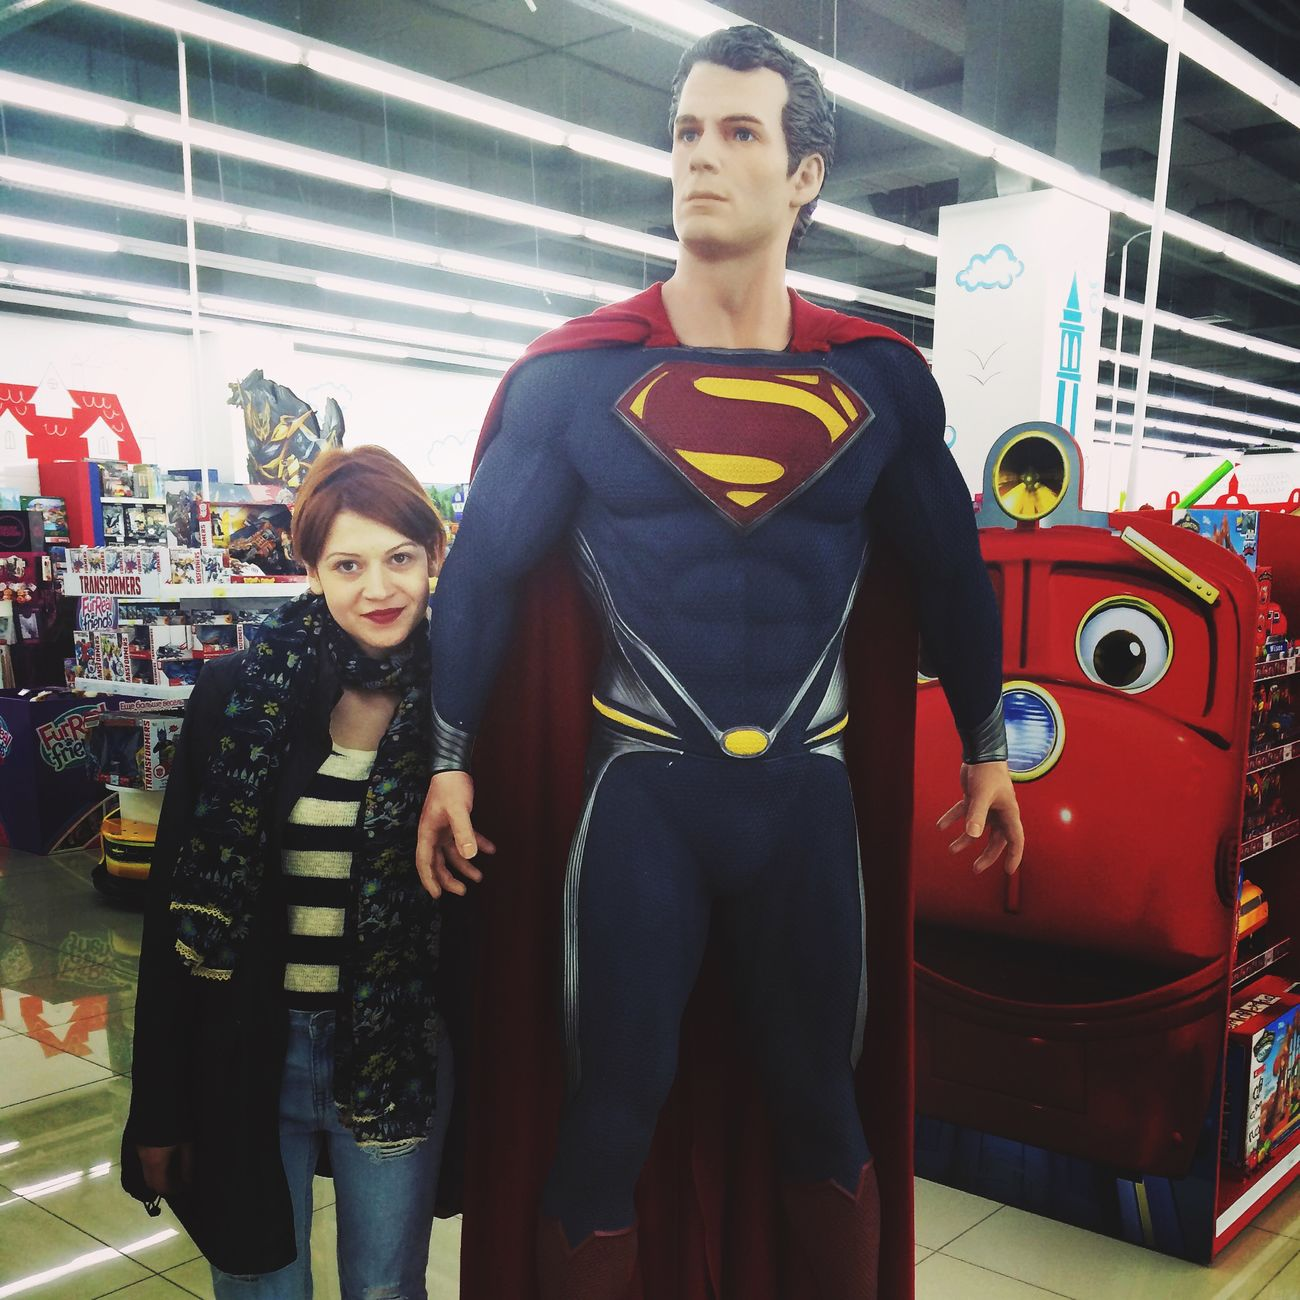 Shopping Look People New Look Taking Photos супермен Superman That's Me девочкитожелюбятиграть Enjoying Life